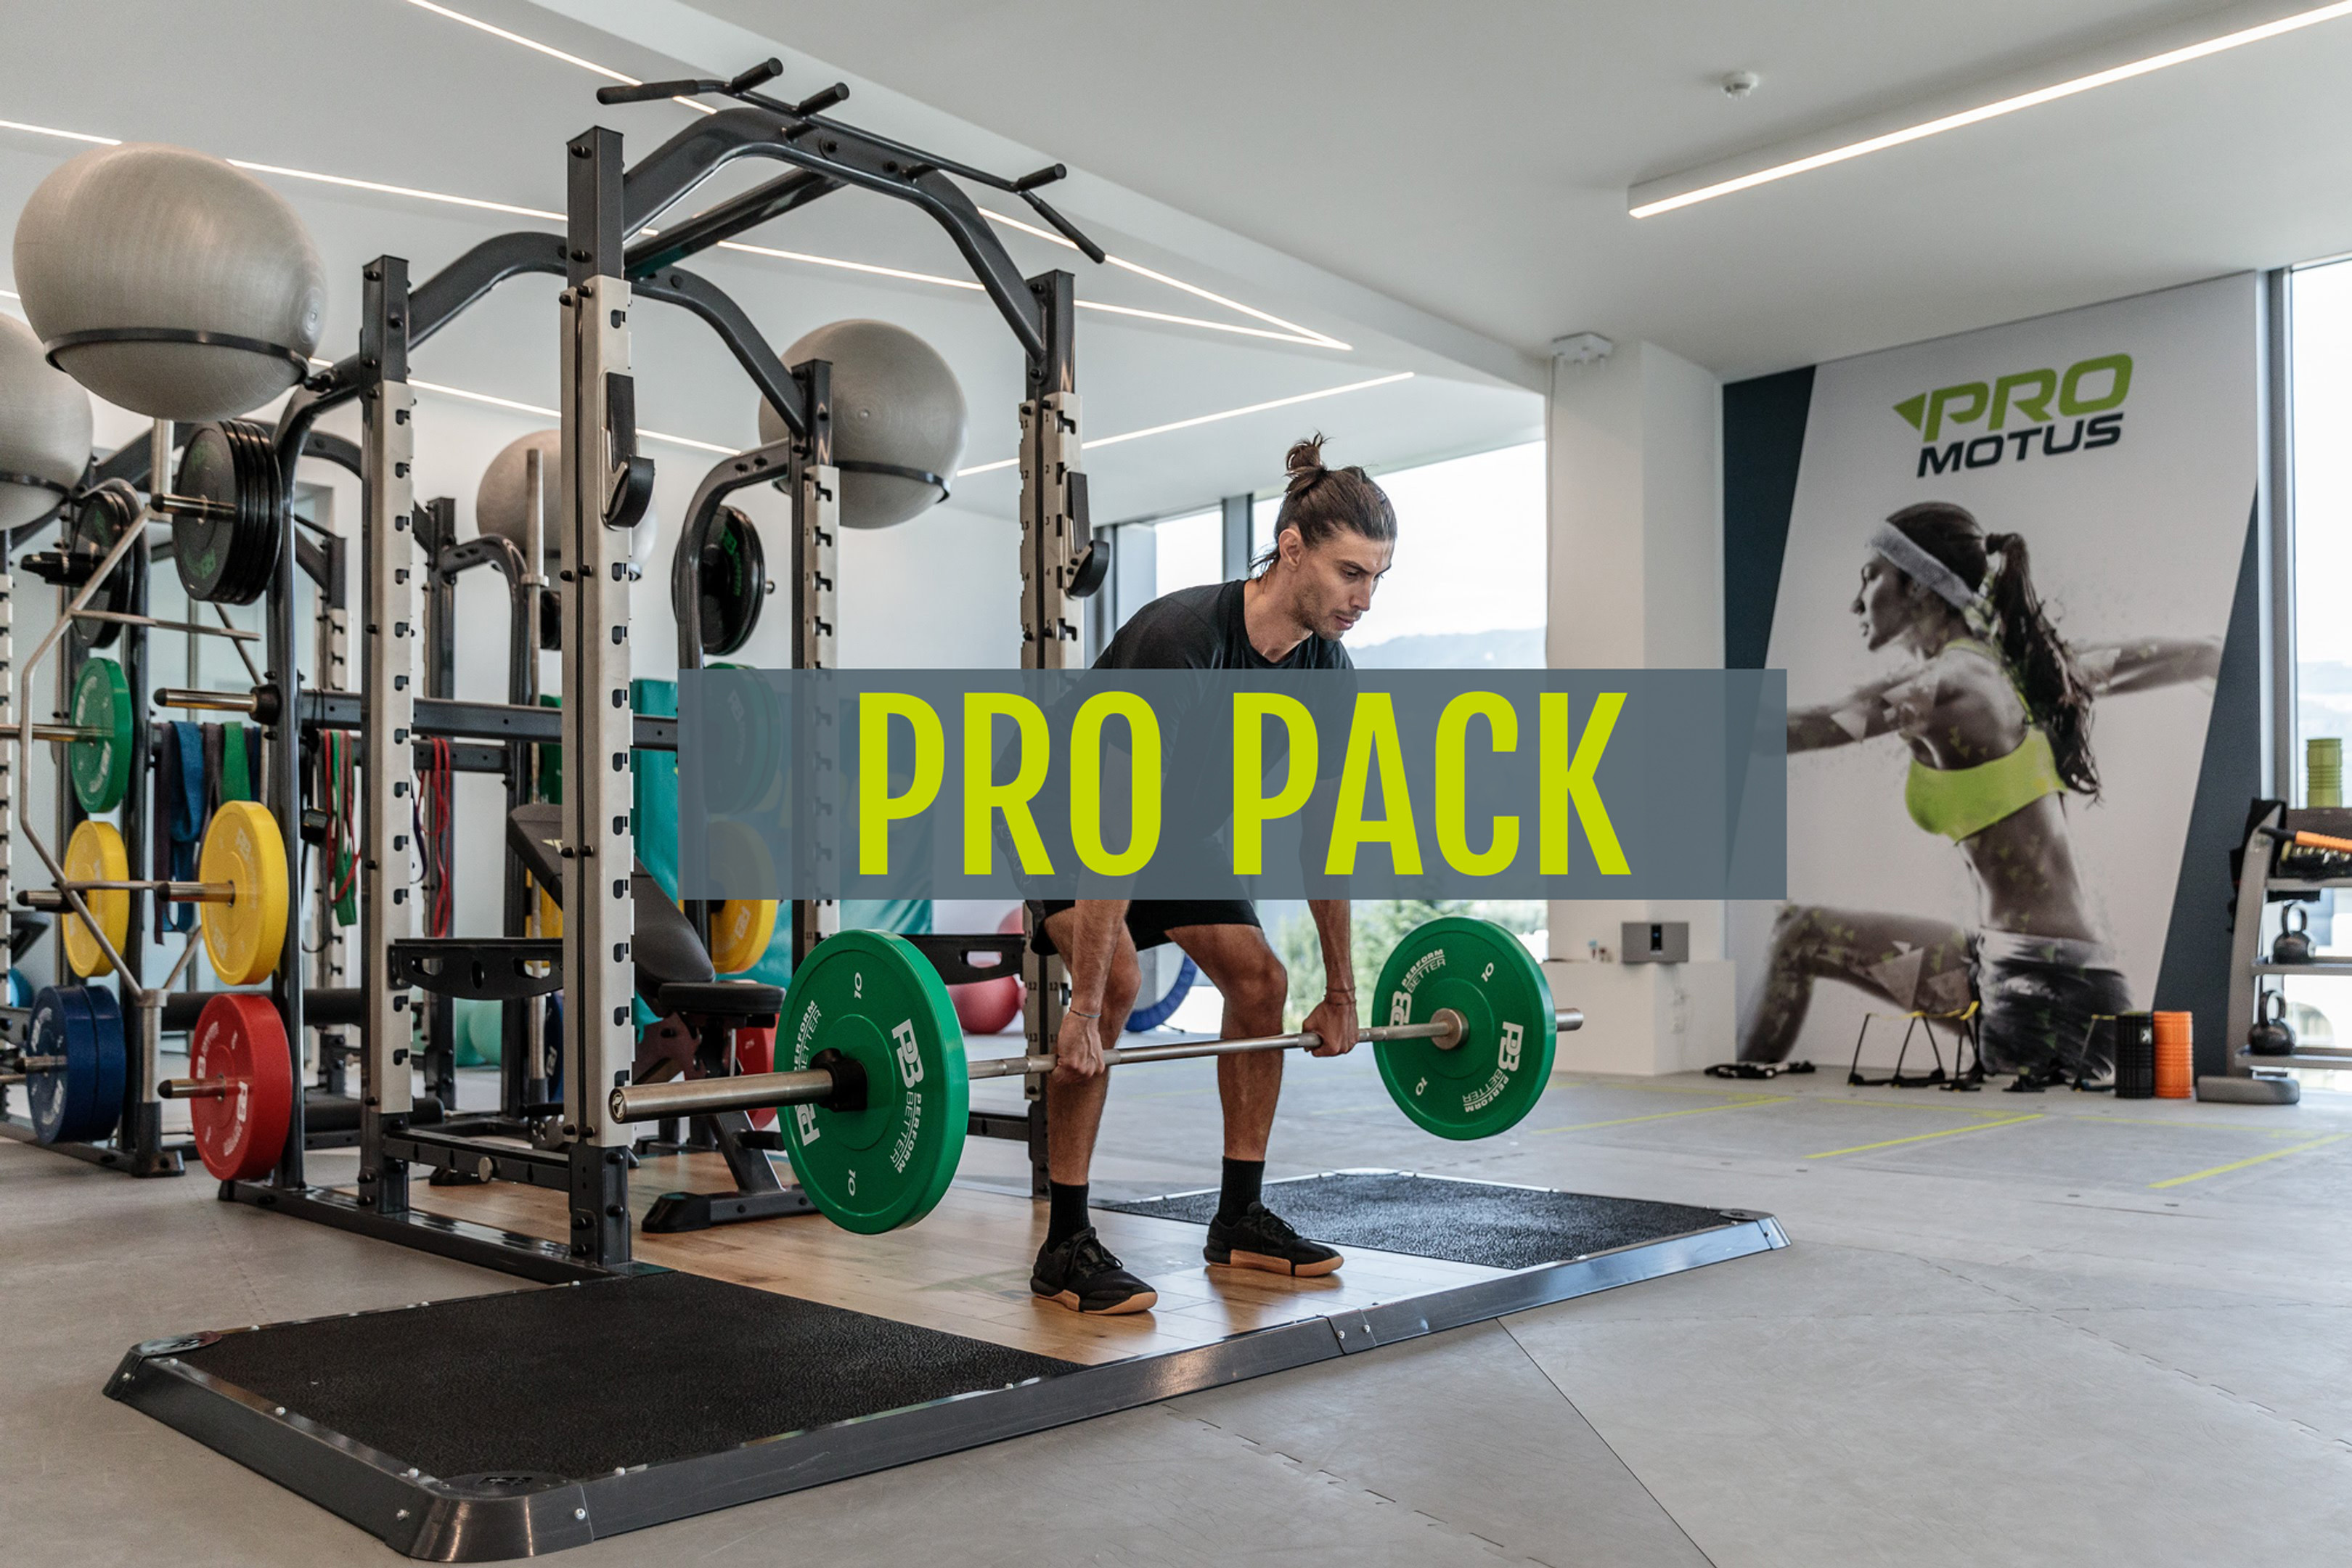 Snowboard - Pro Pack